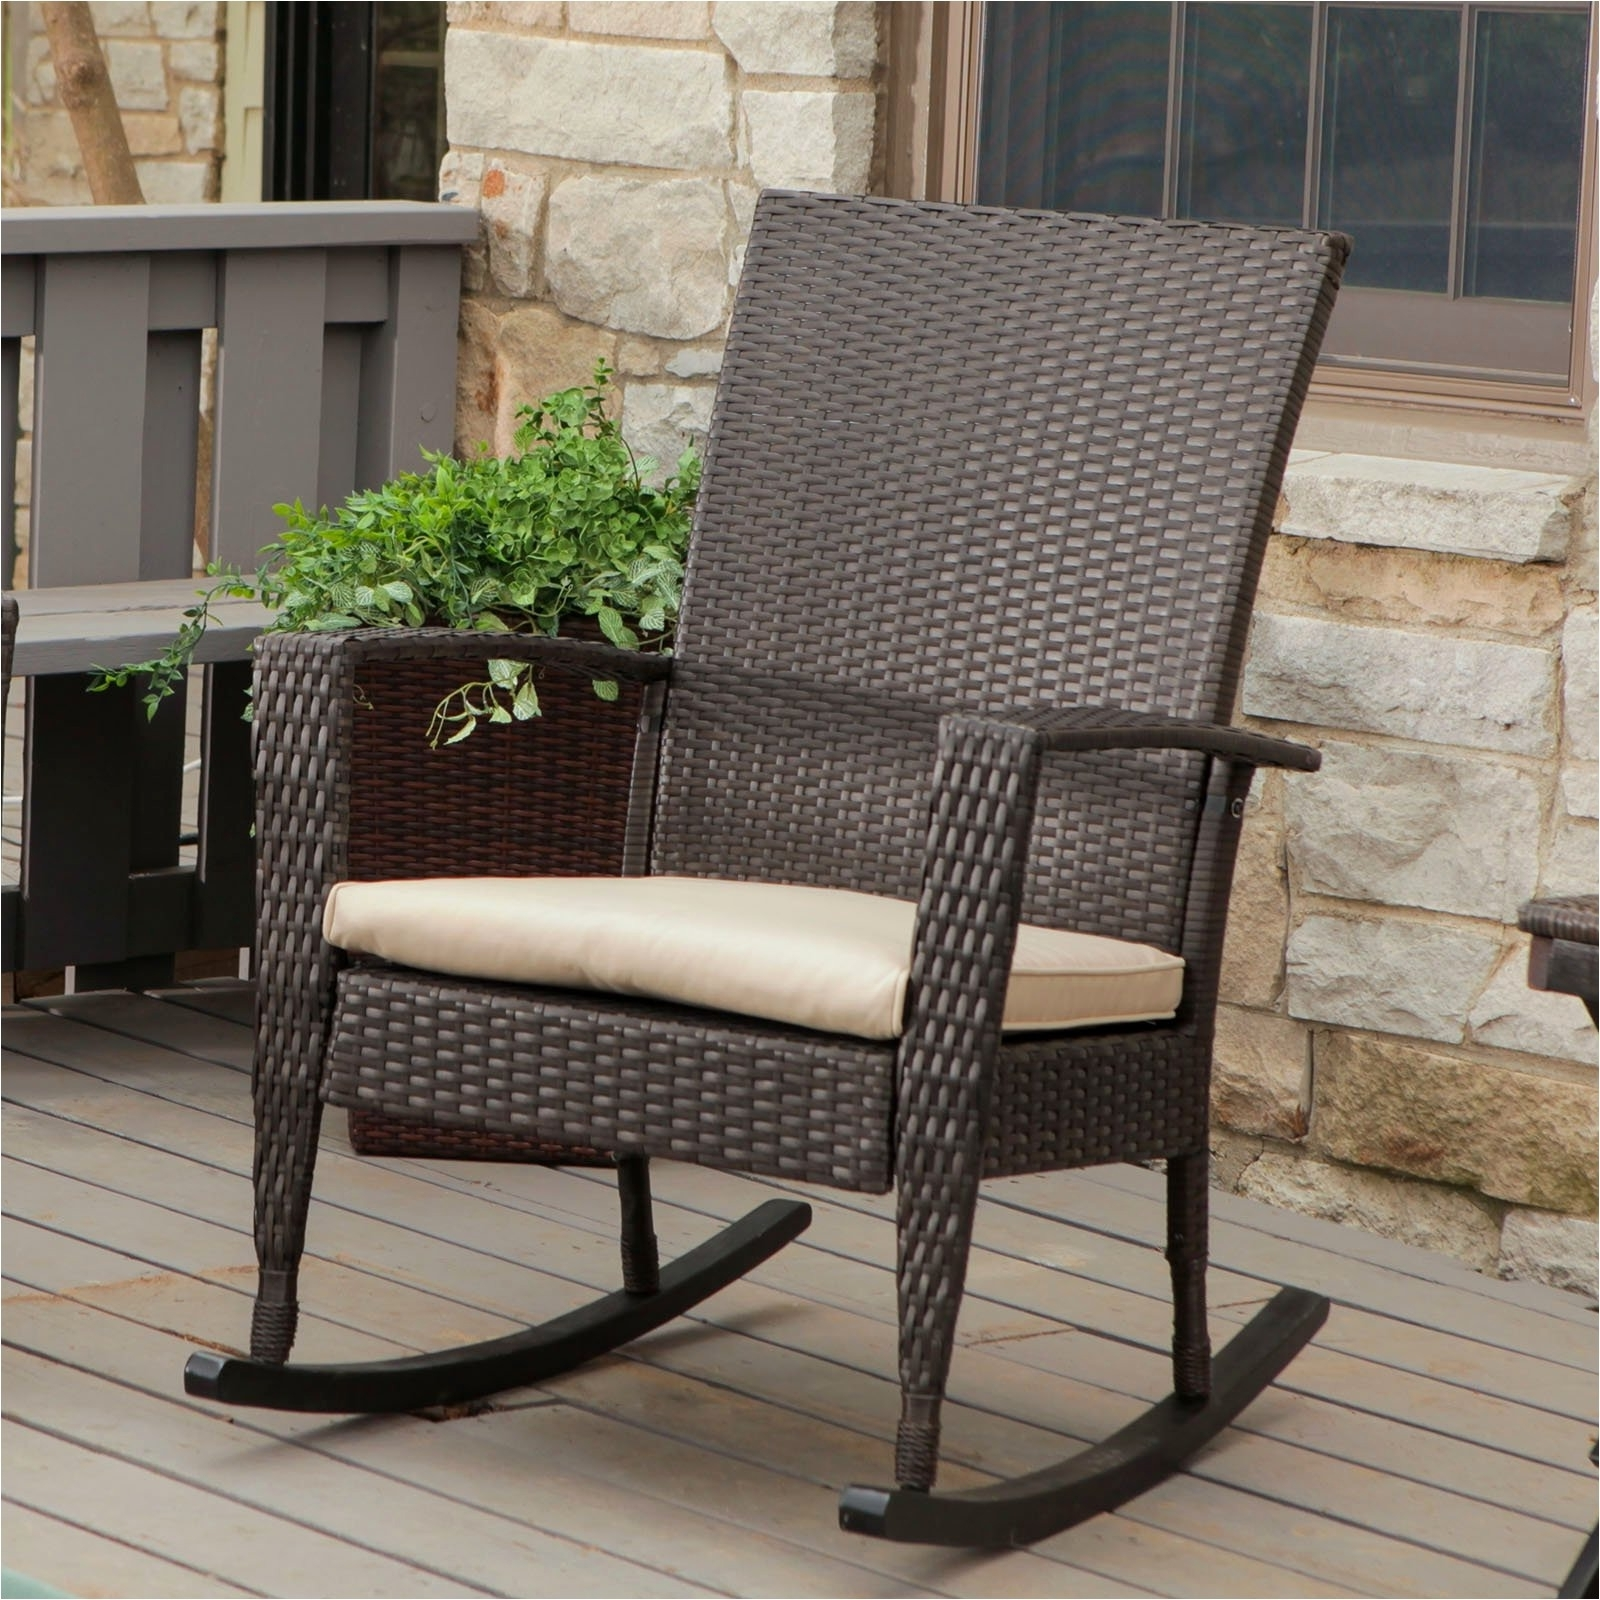 Most Recent Patio : Kroger Patio Furniture Kroger Outdoor Furniture Regarding Rocking Chairs At Kroger (View 7 of 20)